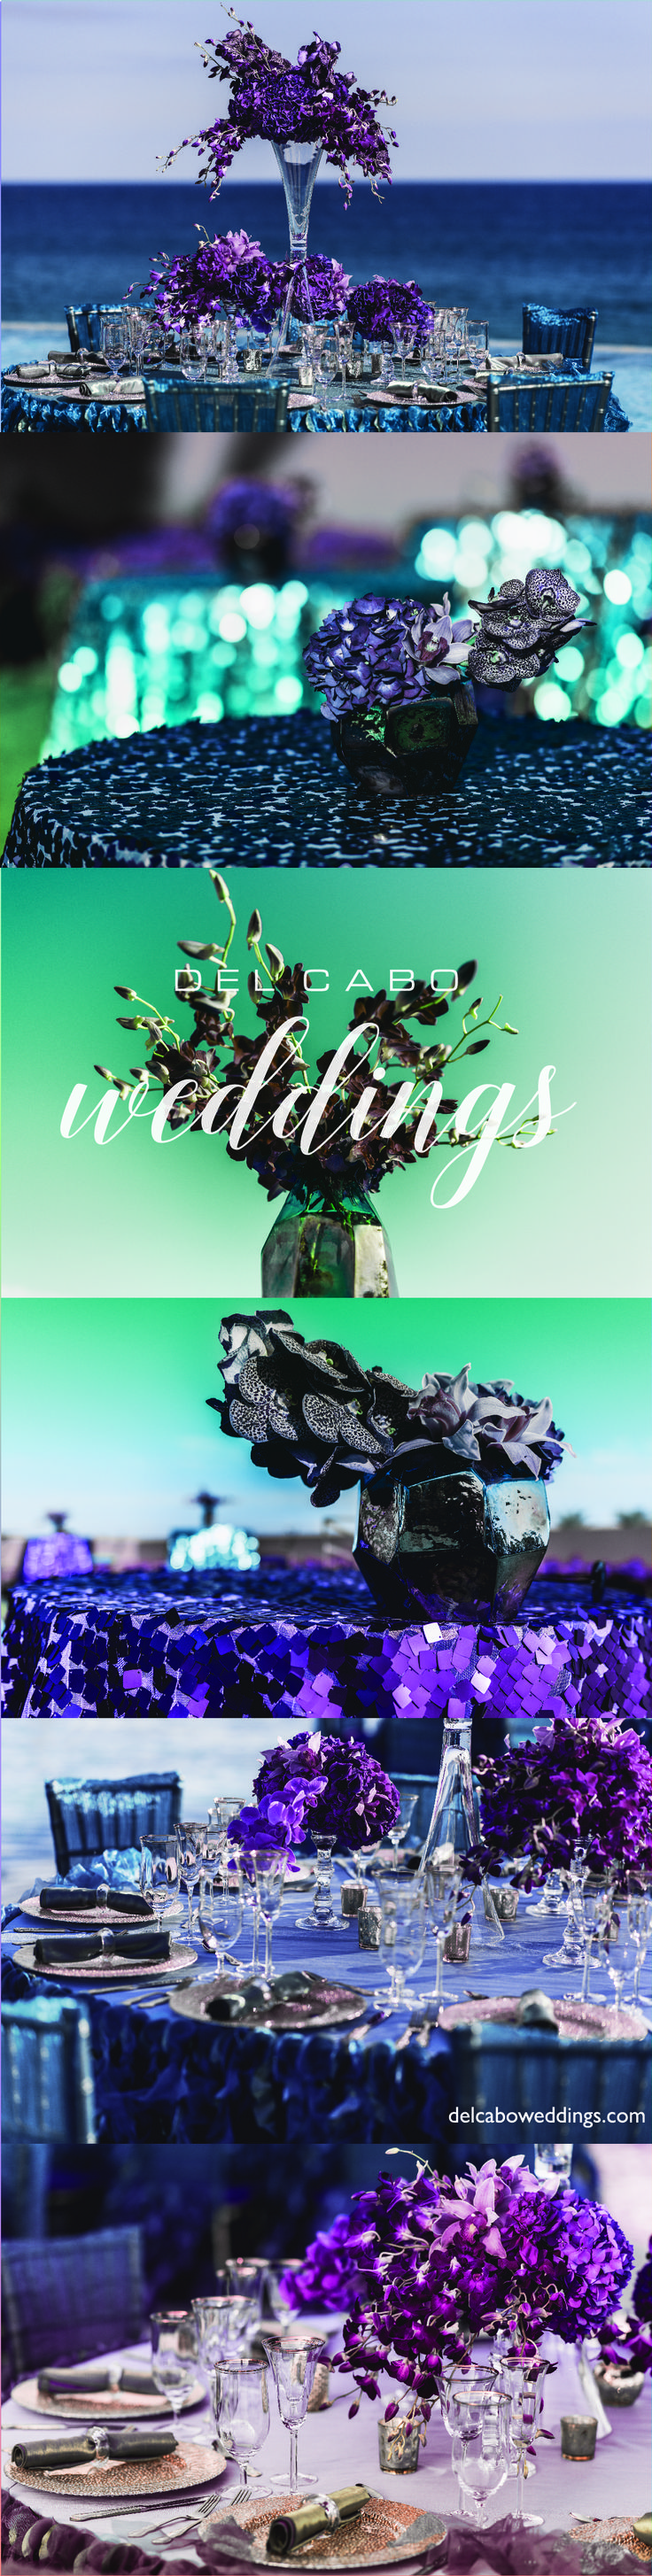 Have a jewel wedding reception at beautiful Cabo! Have a unique destination wedding full of diamonds and sparkle!